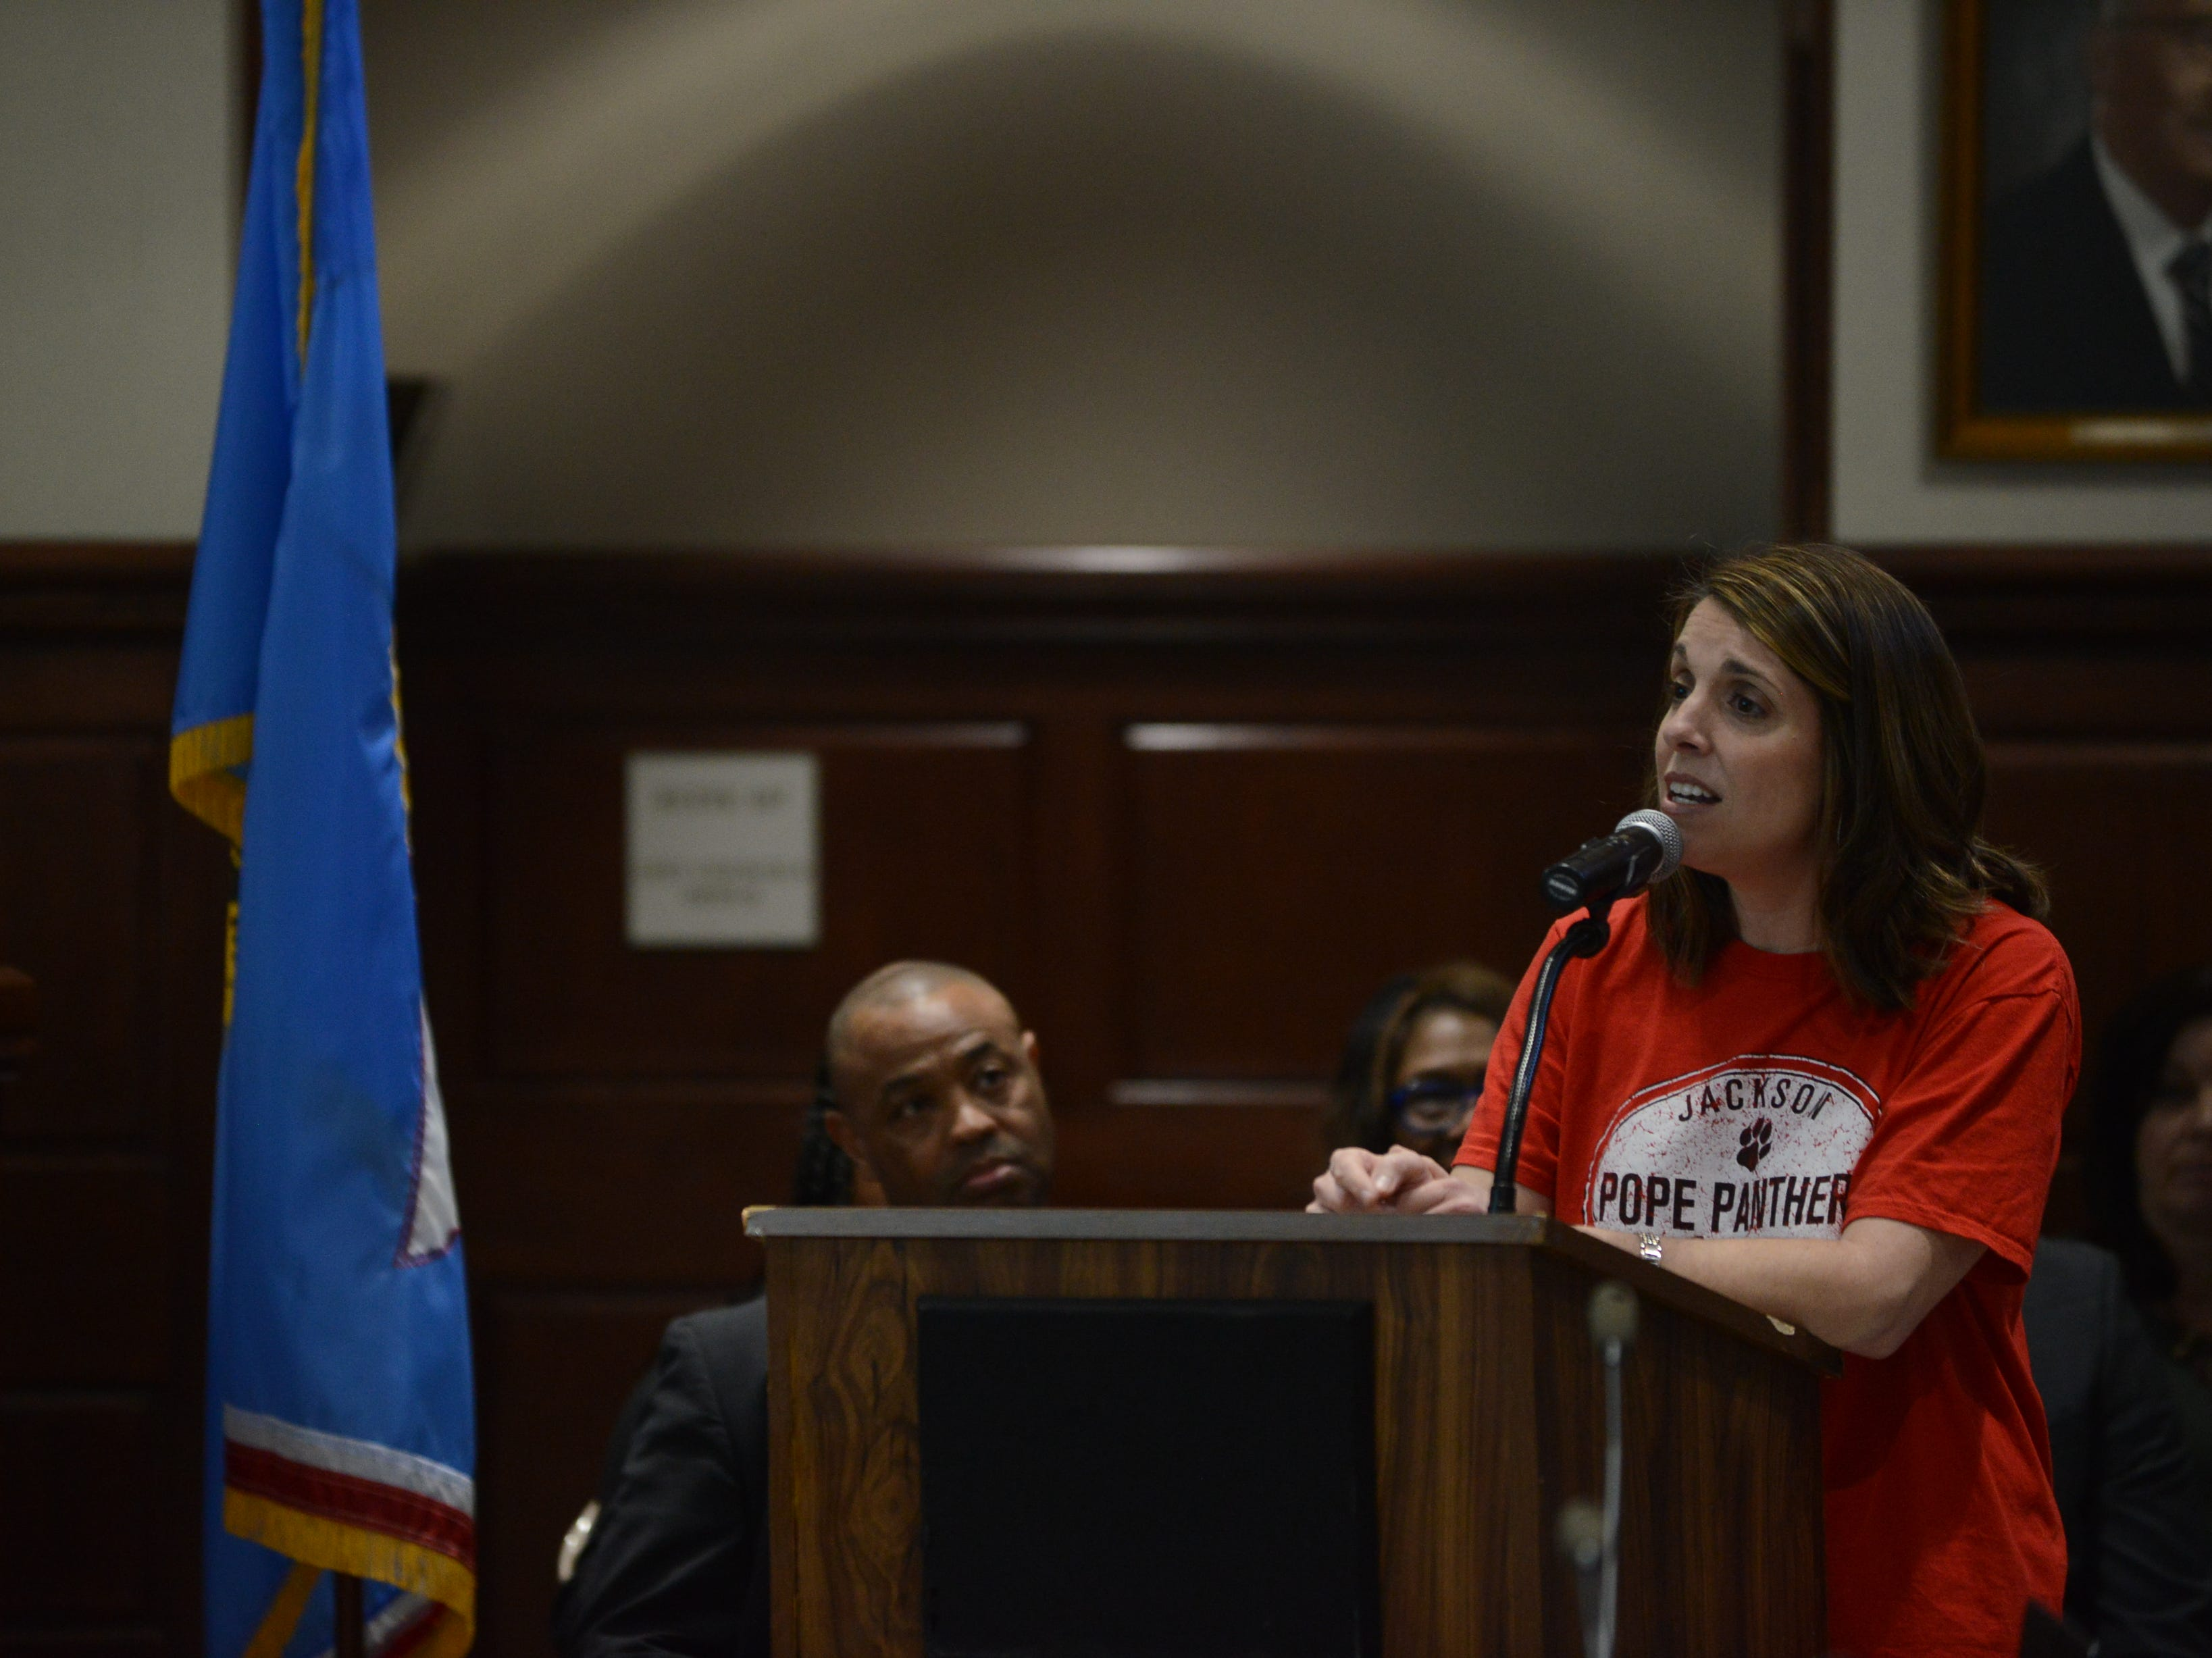 Ellen Neely, a parent of three students at Pope Elementary School, told Superintendent Eric Jones that people need him to keep fighting for them during public comment at the JMC school board meeting at Jackson City Hall on Thursday night.